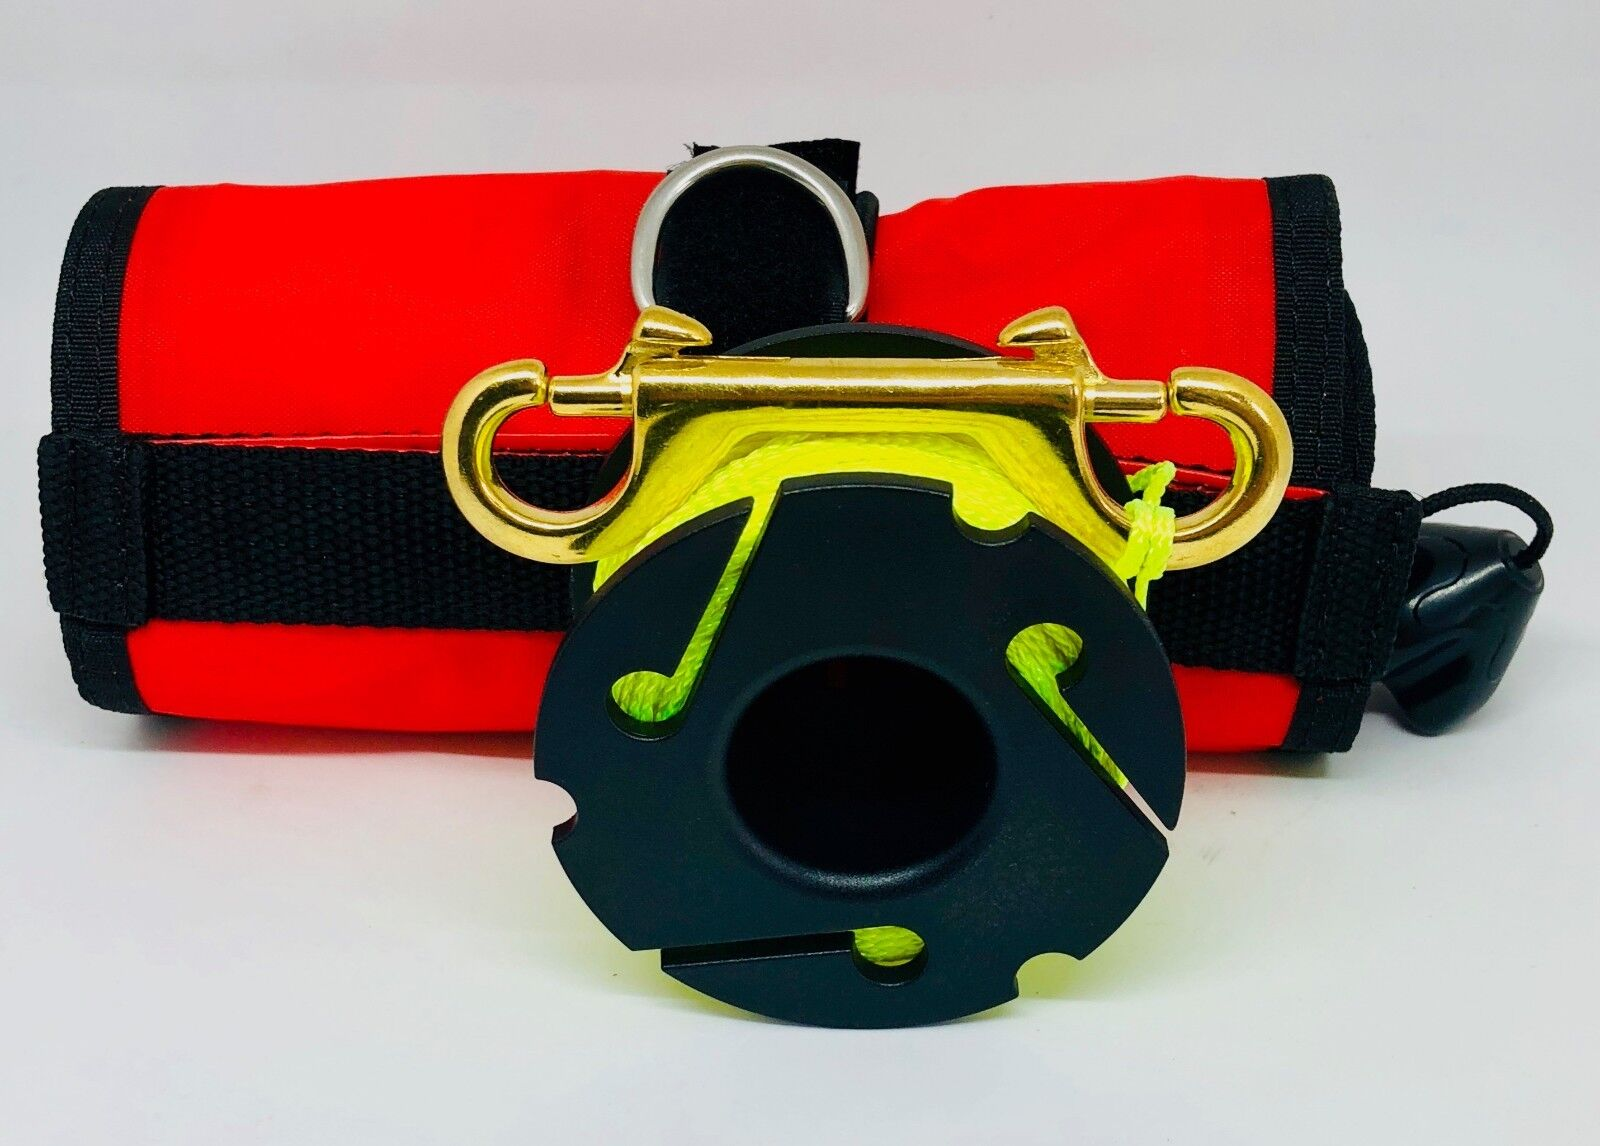 Scuba Diving SMB DSMB 120x15cm with New Design 30m Yellow Finger Reel